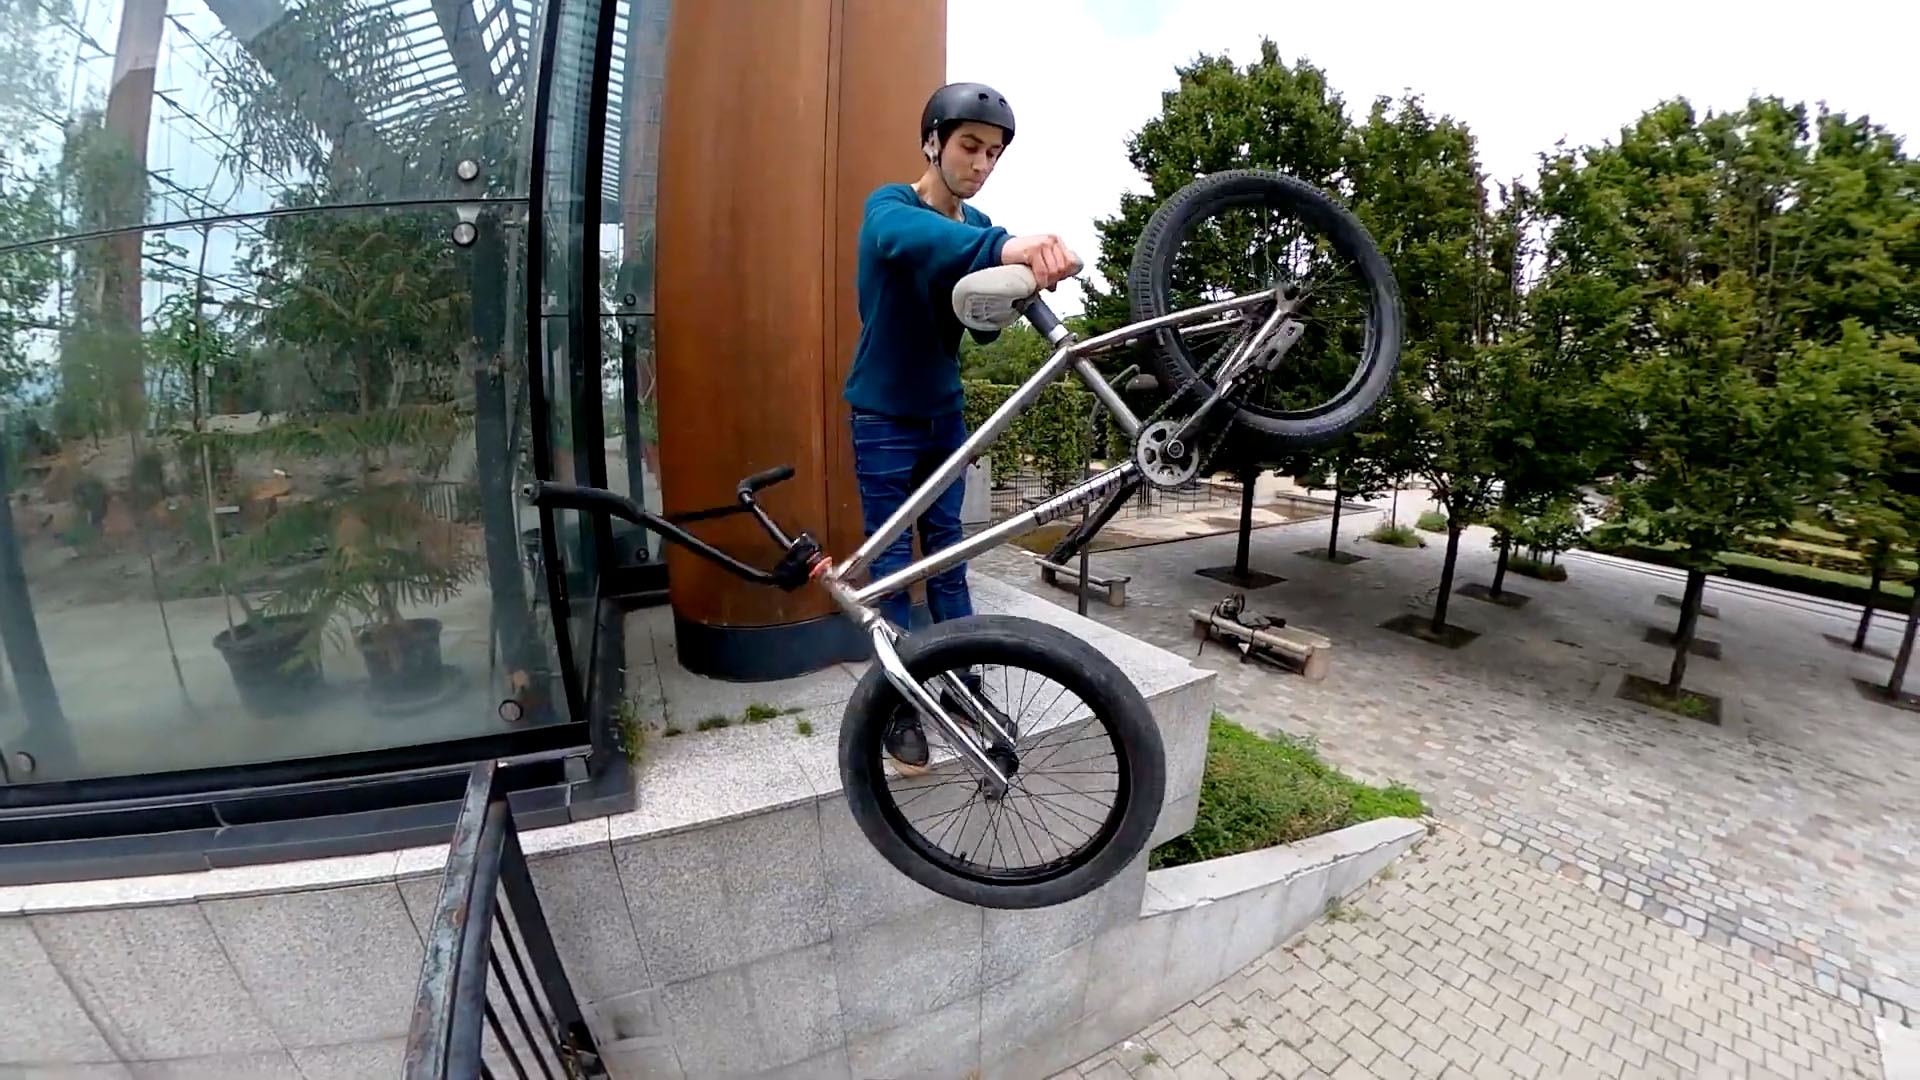 BIKESPIN: Rotating Seatpost Project